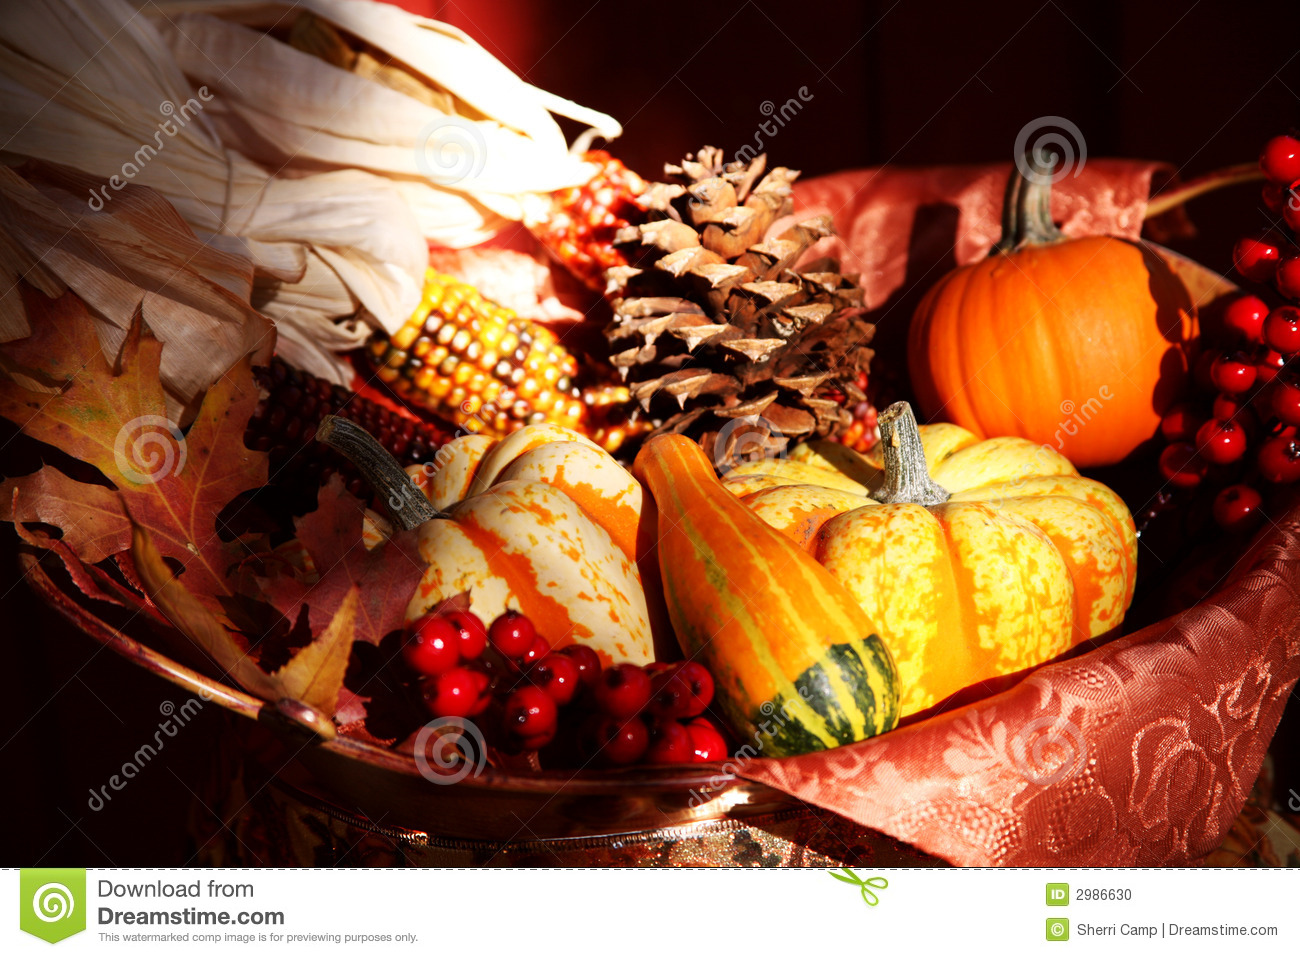 Fall Harvest Wallpaper Images Thanksgiving Fall Harvest Stock Photo Image 2986630